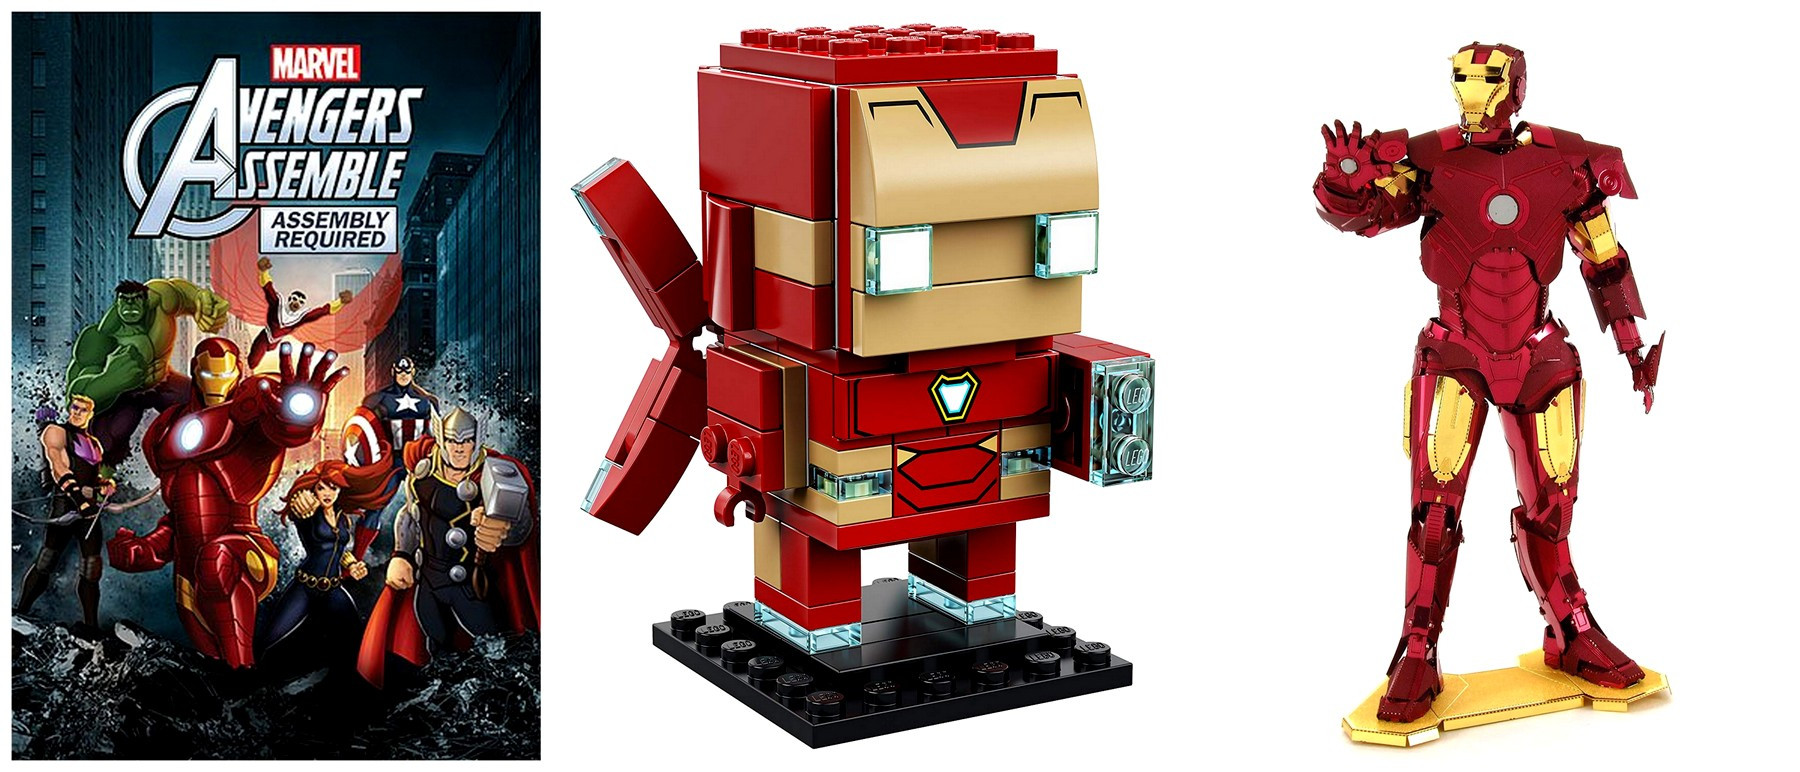 Best ideas about Marvel Gift Ideas . Save or Pin 31 of the Best Marvel Gifts for Die Hard Fans Right Now Now.